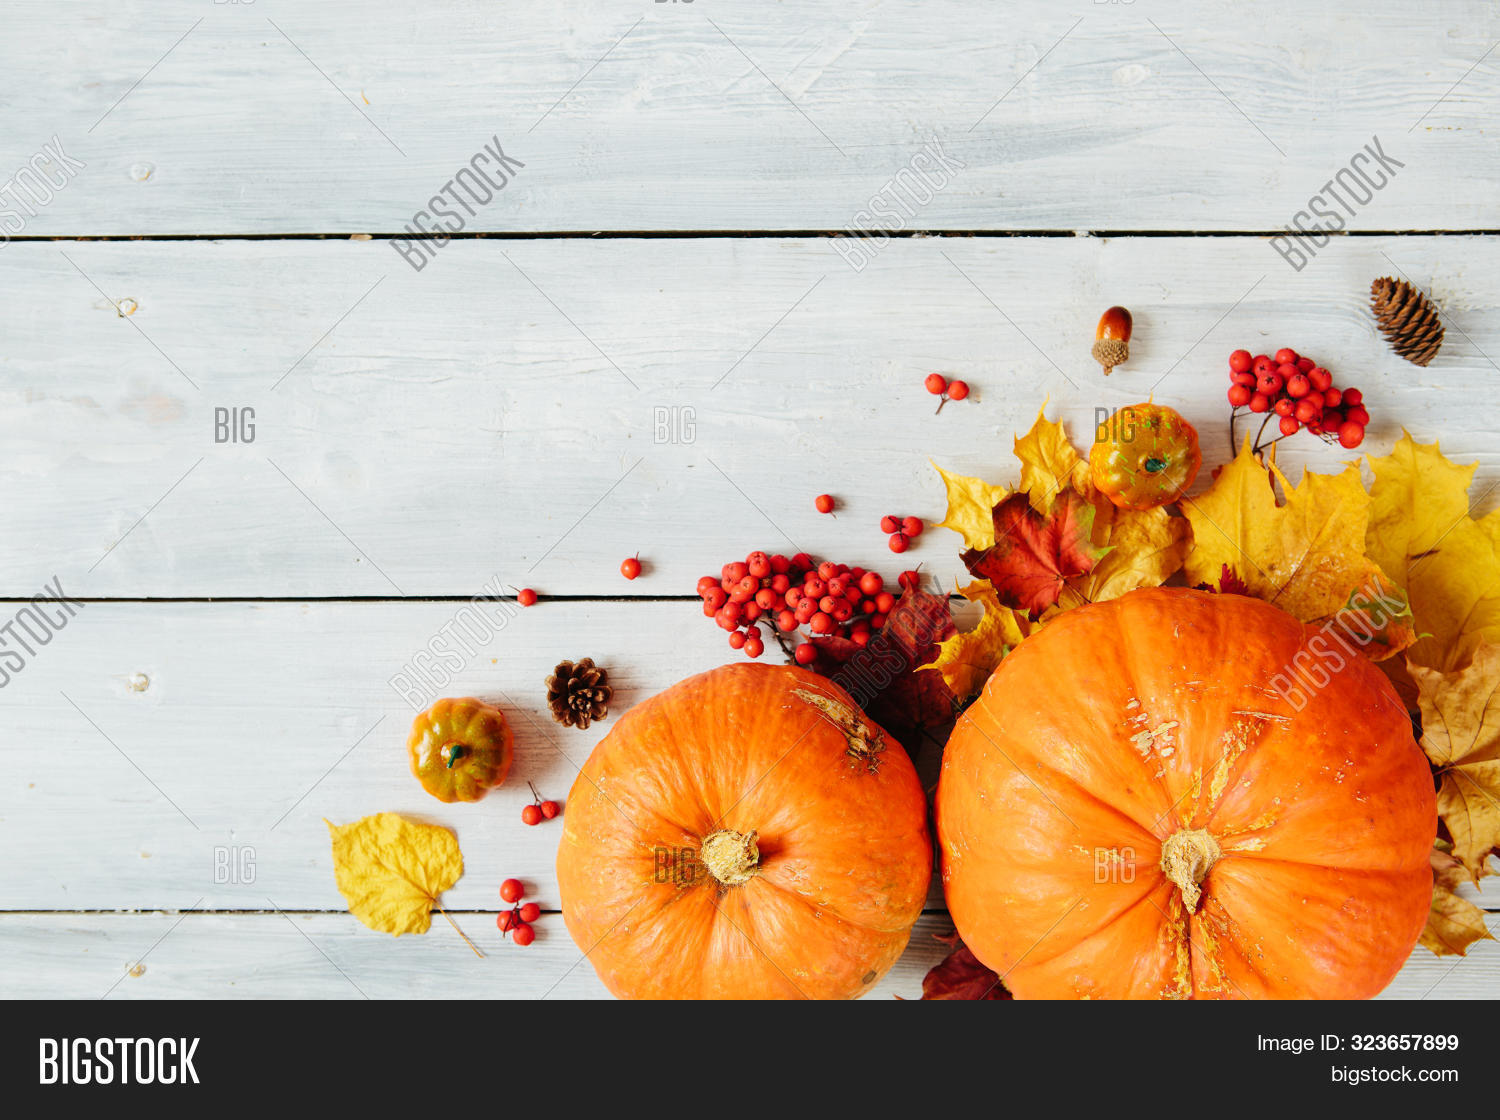 agriculture,autumn,autumnal,background,brown,copy,decoration,dry,fall,foliage,food,frame,halloween,happy,holiday,leaf,leaves,maple,menu,natural,nature,orange,organic,plant,pumpkin,red,season,space,table,thanksgiving,variety,white,wood,wooden,yellow